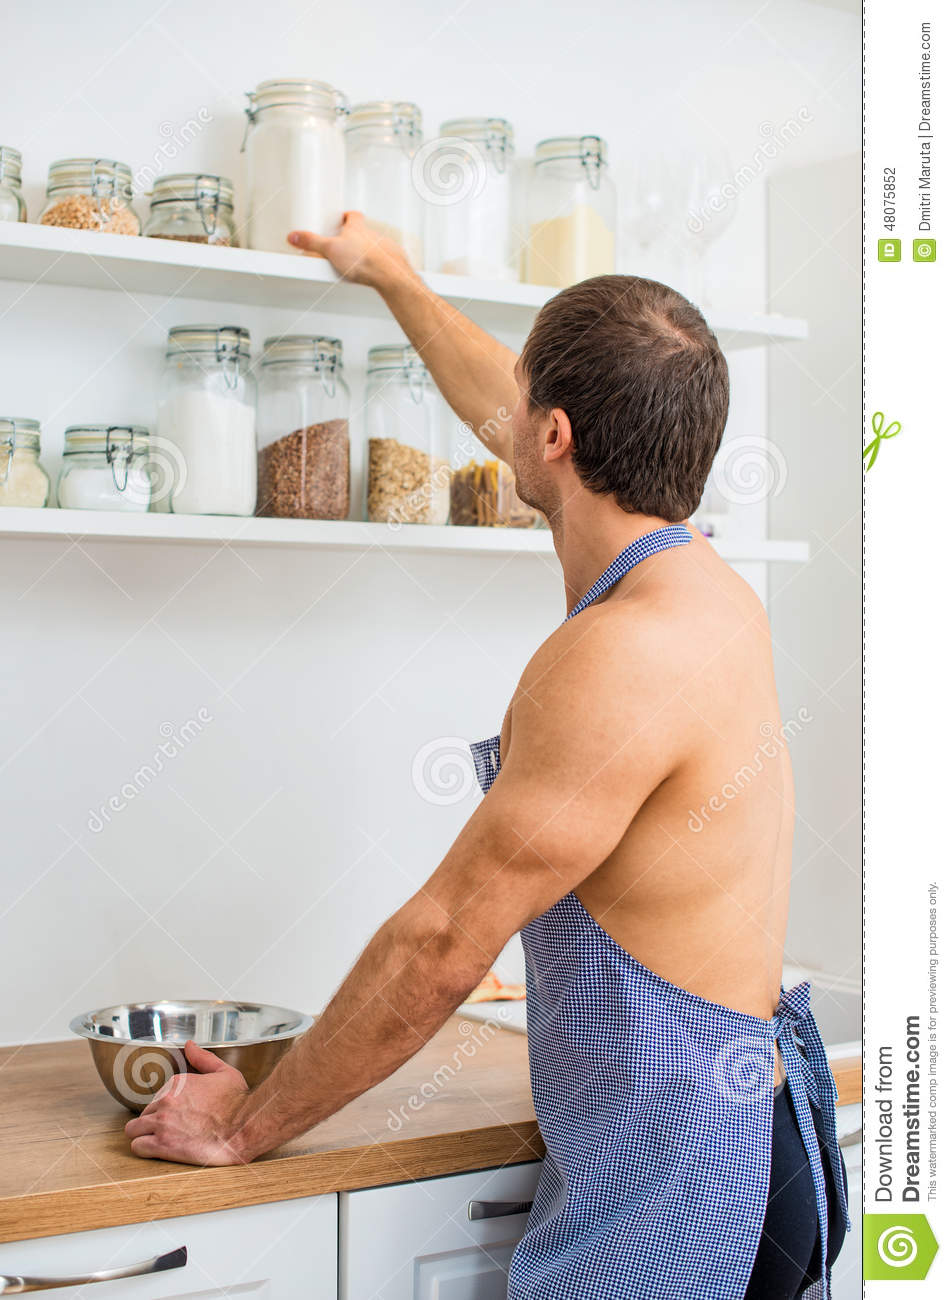 Man Preparing Food In The Kitchen. Stock Photo - Image of naked ...